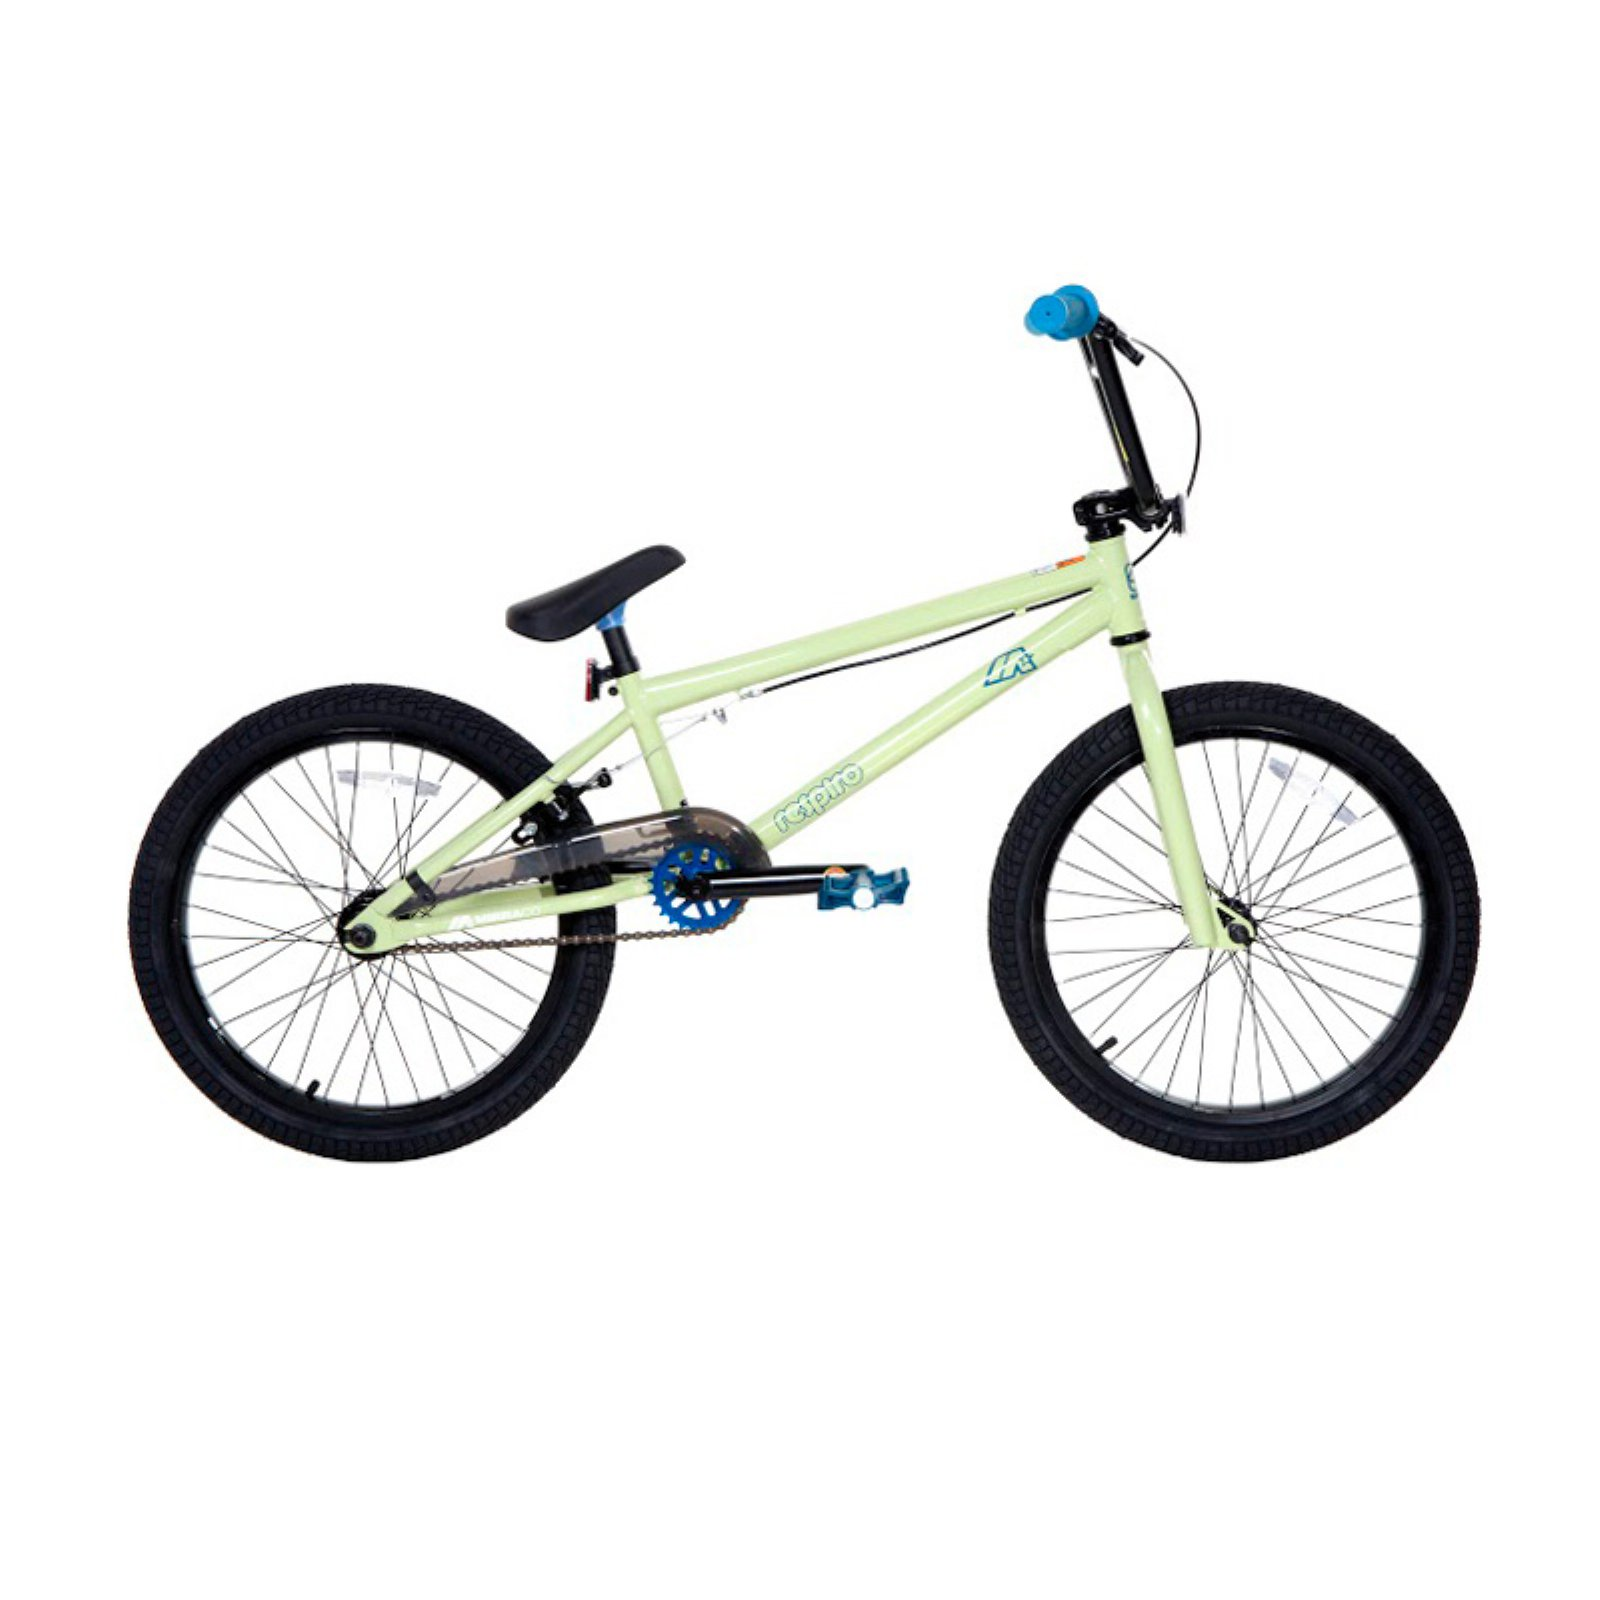 "20"" Mirraco Mirra Respiro Boys' Bike"